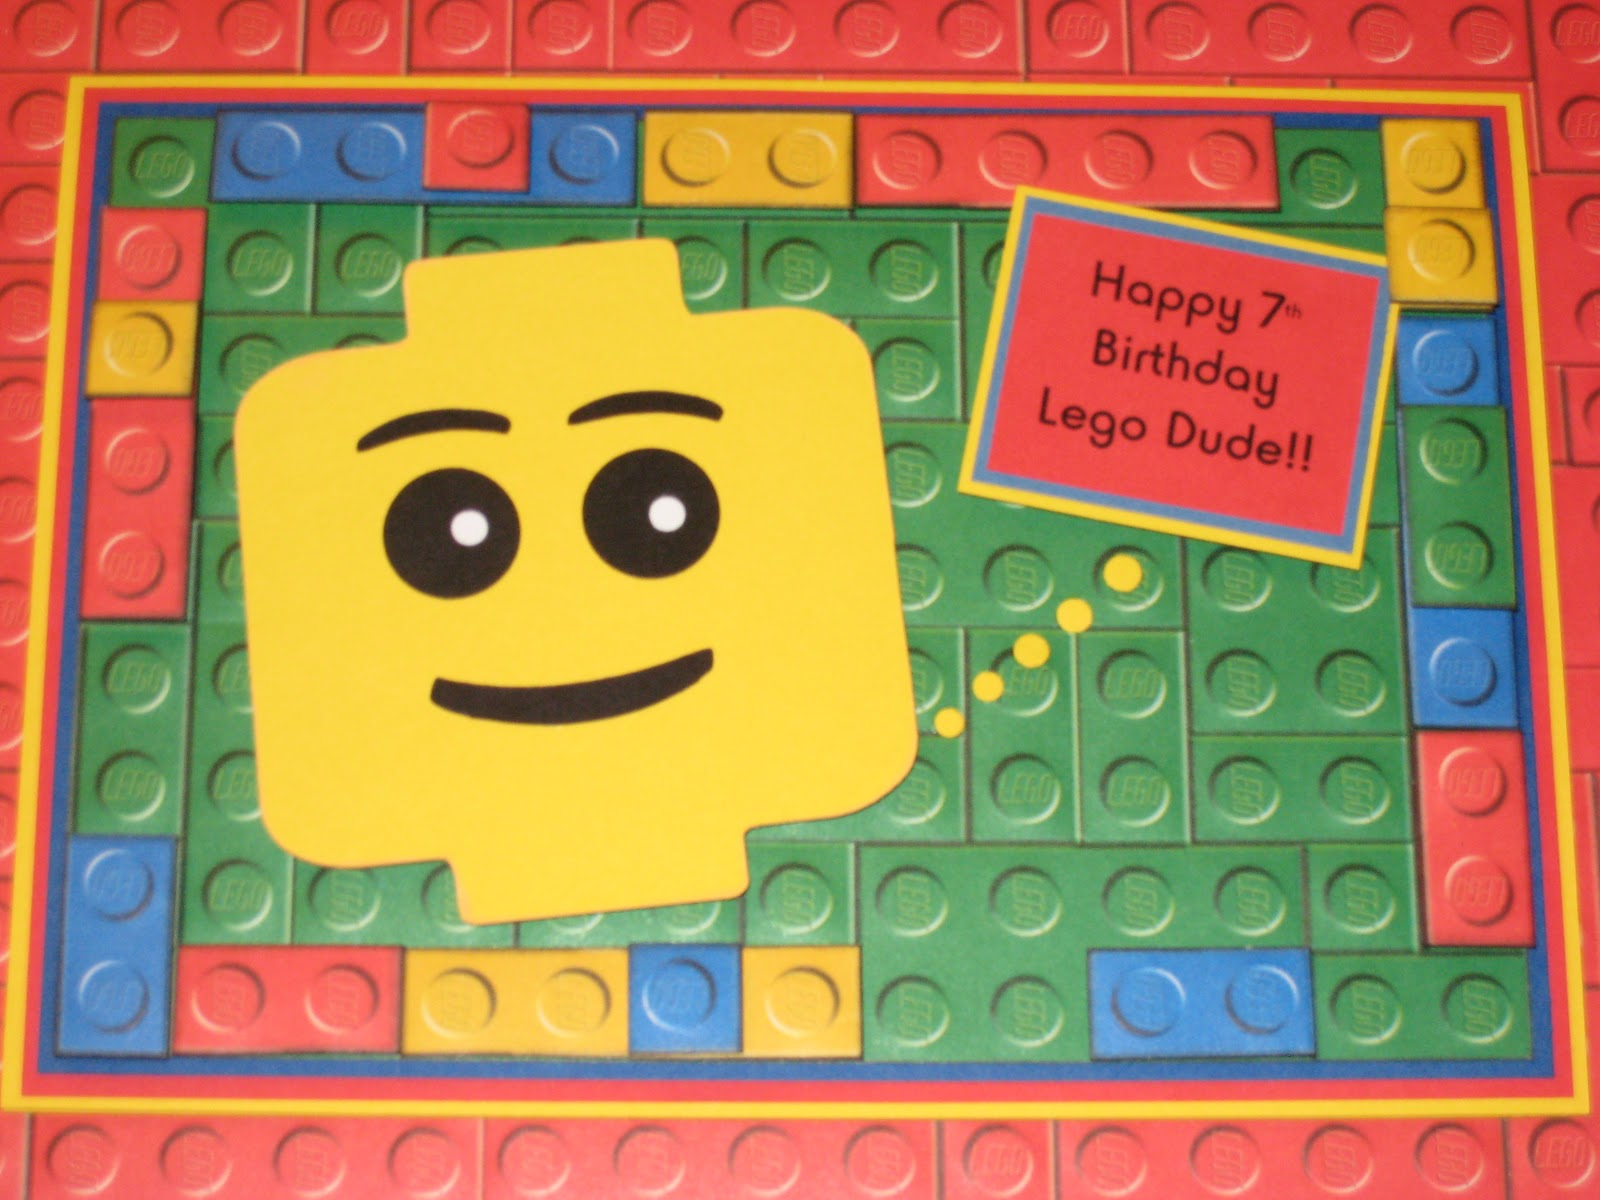 My paper productions lego birthday card lego birthday card bookmarktalkfo Image collections